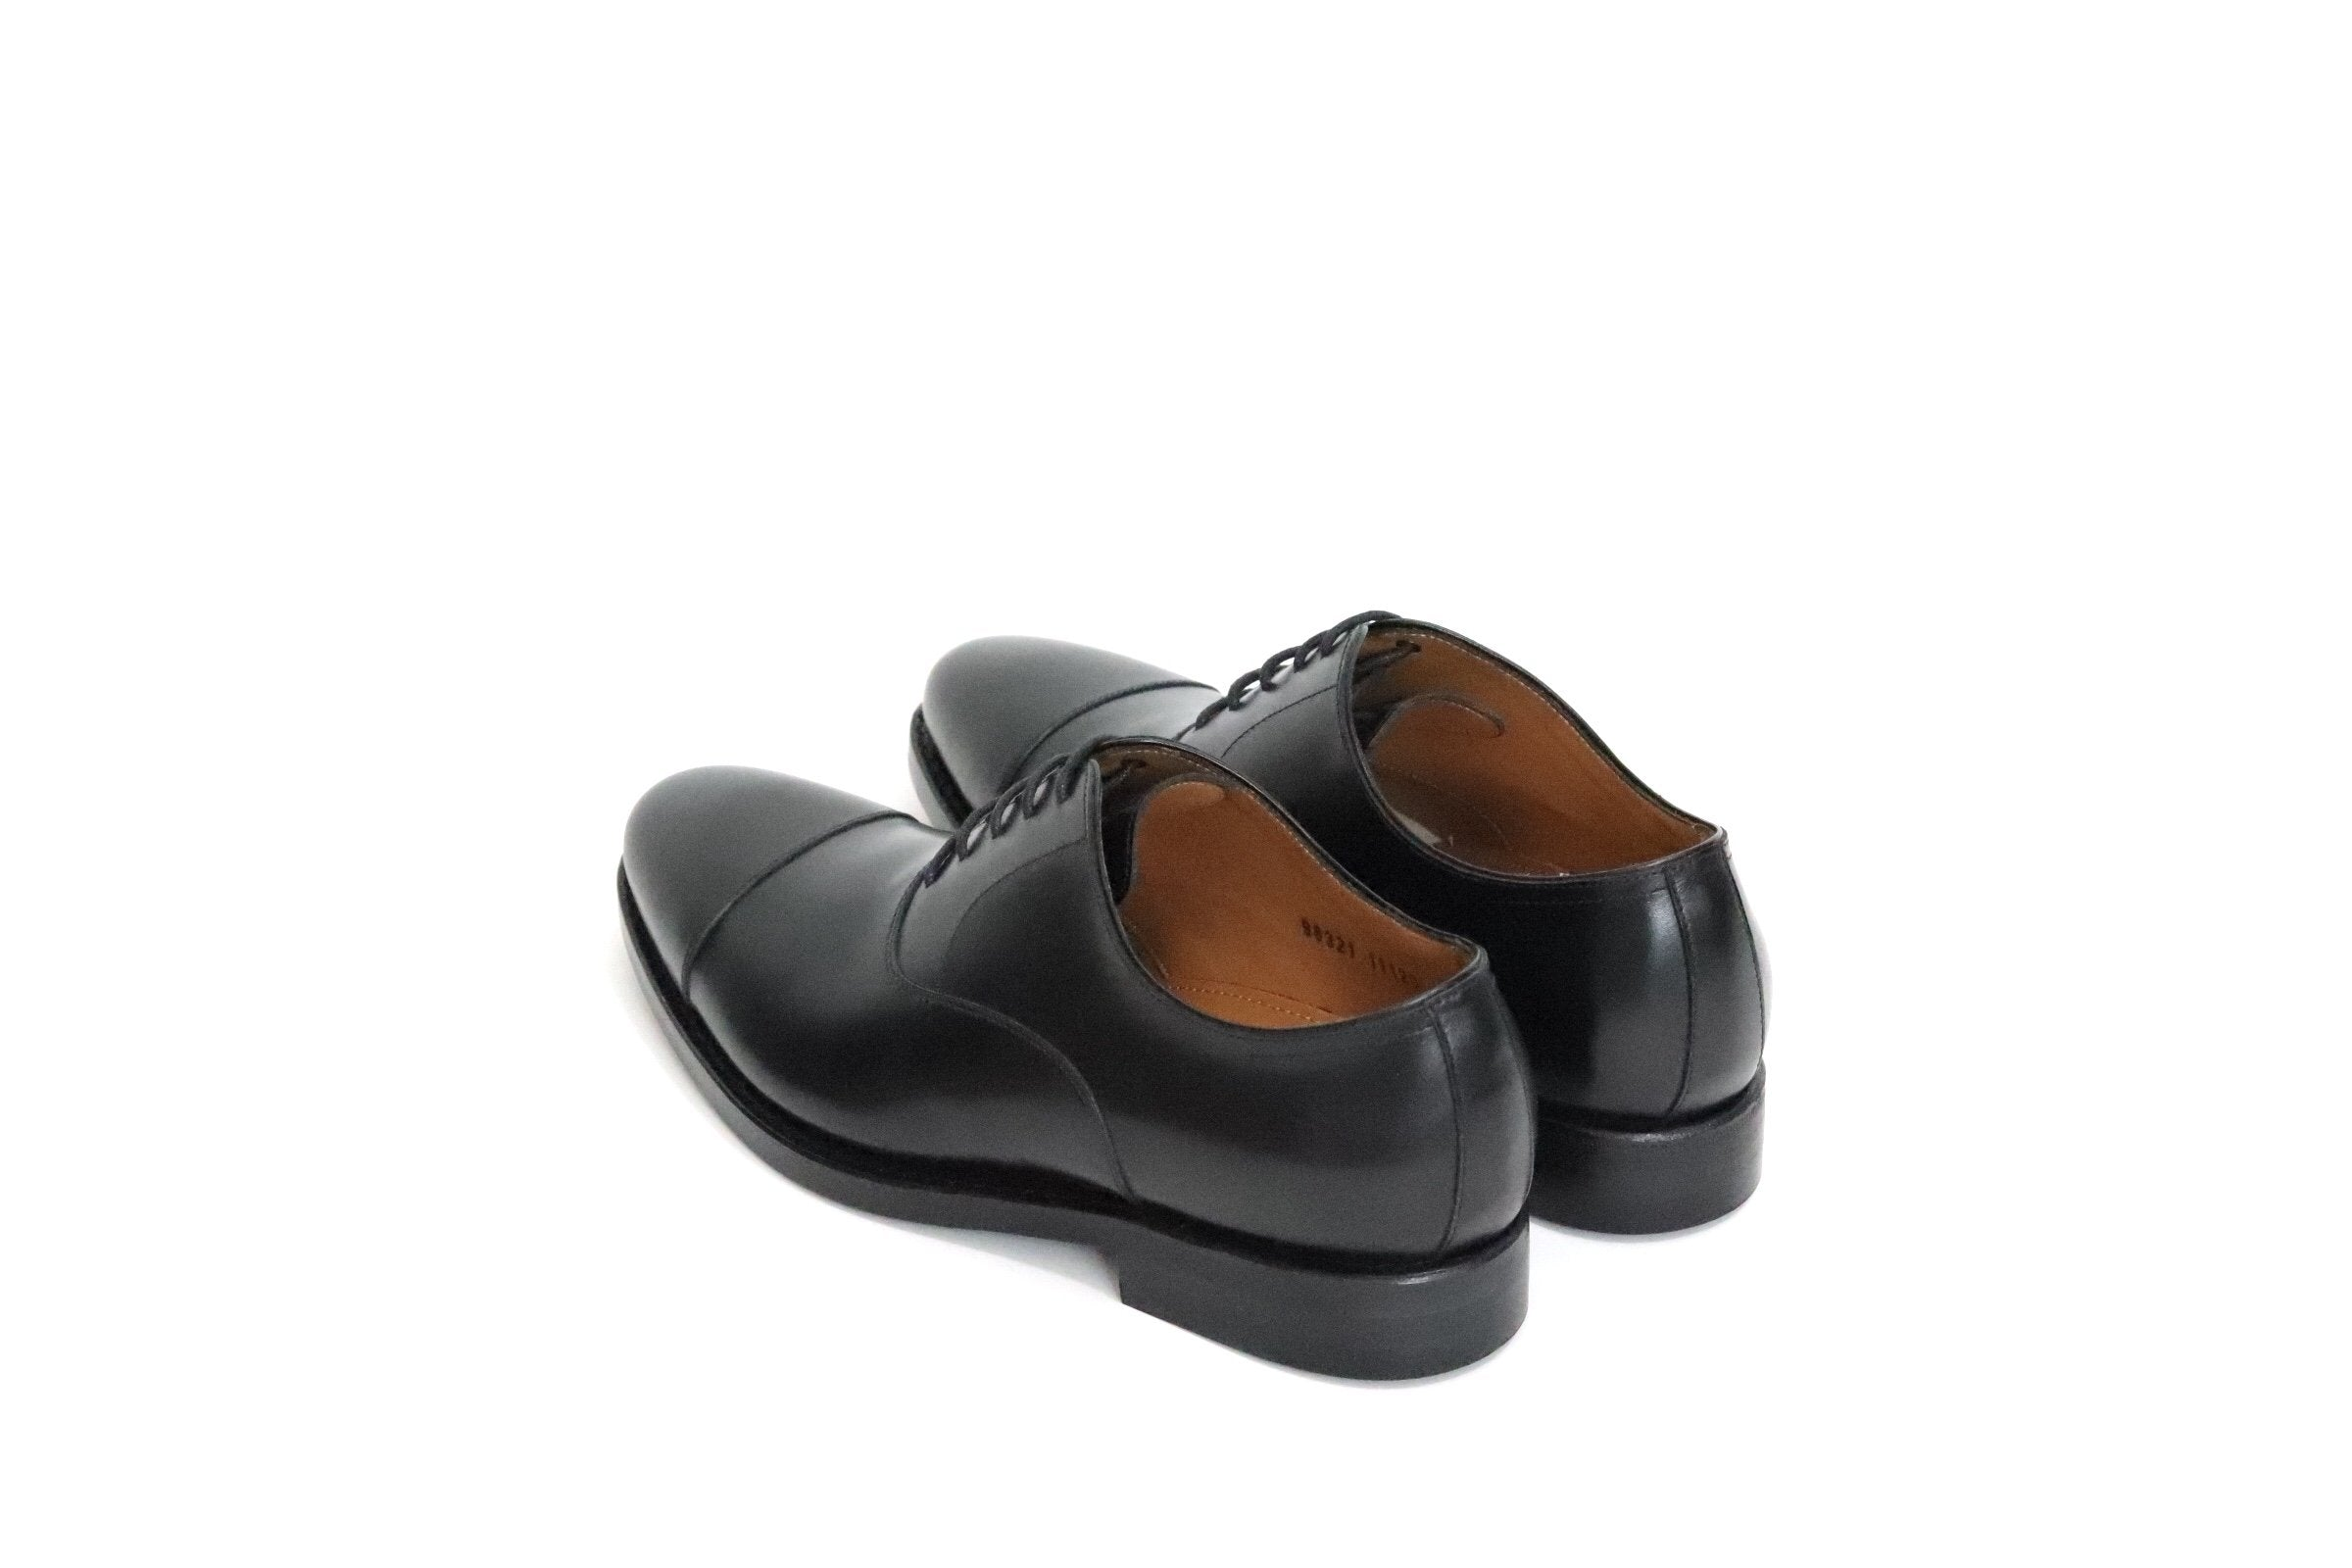 Jalan Sriwijaya 98321 Oxford Cap Toe (with Rubber Sole)